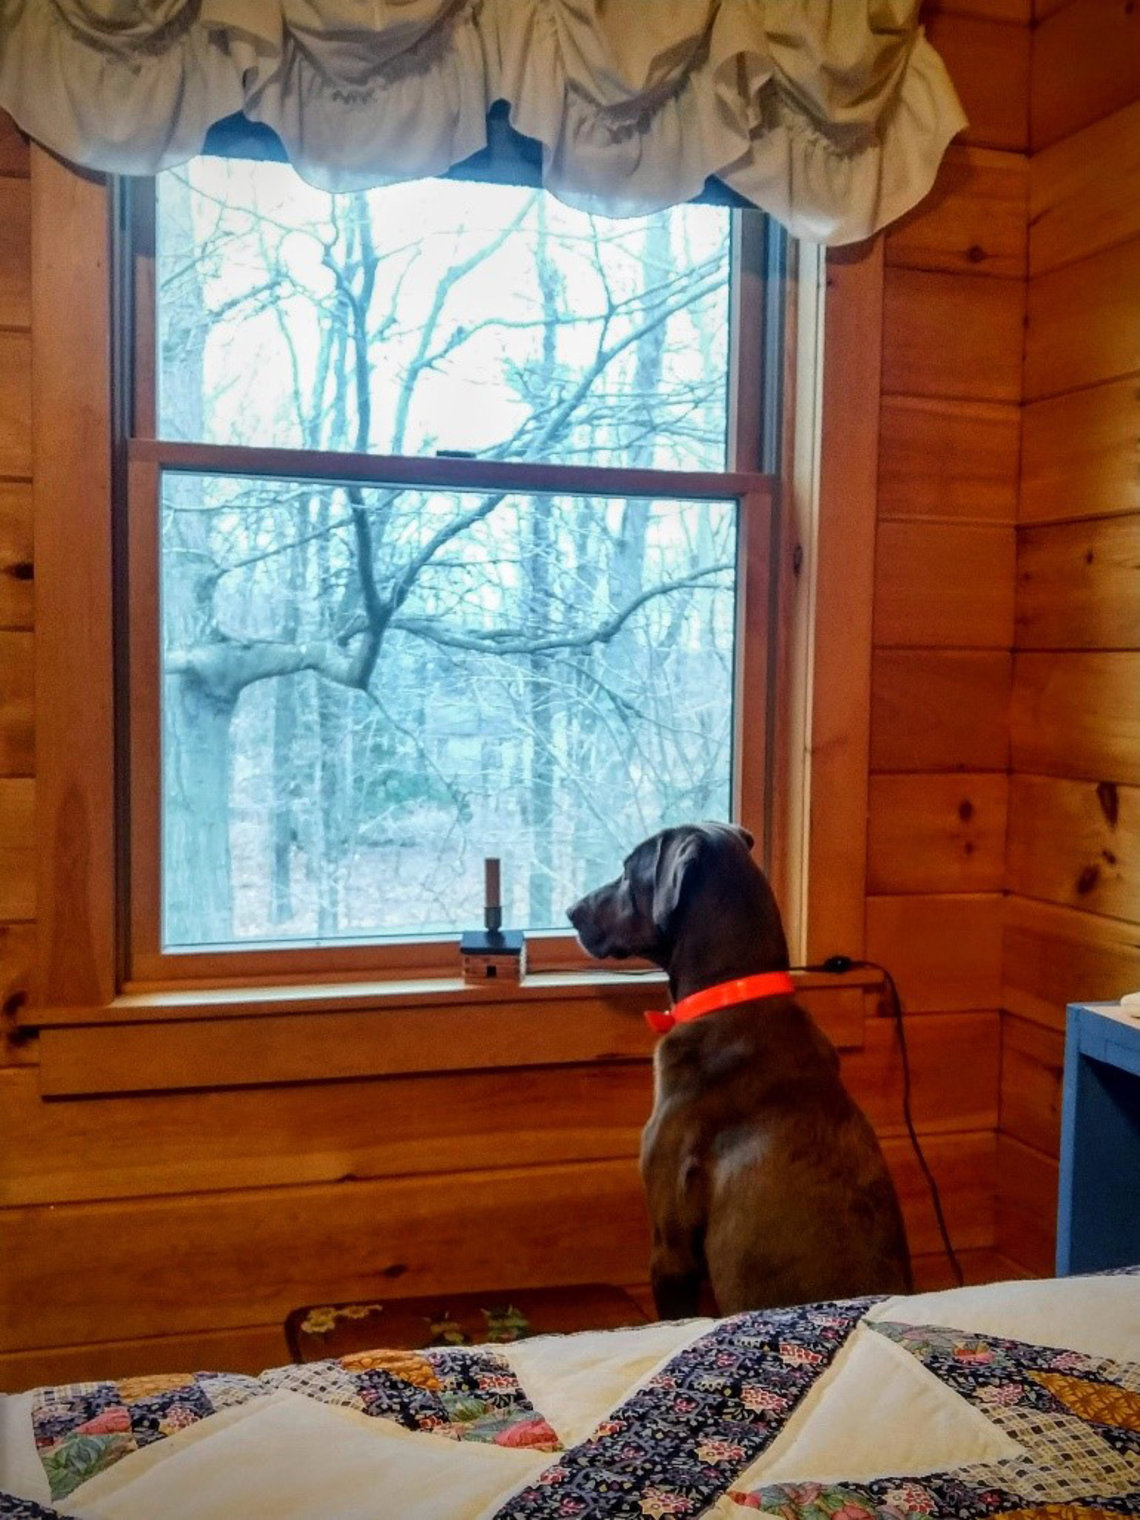 Dog looks out window.